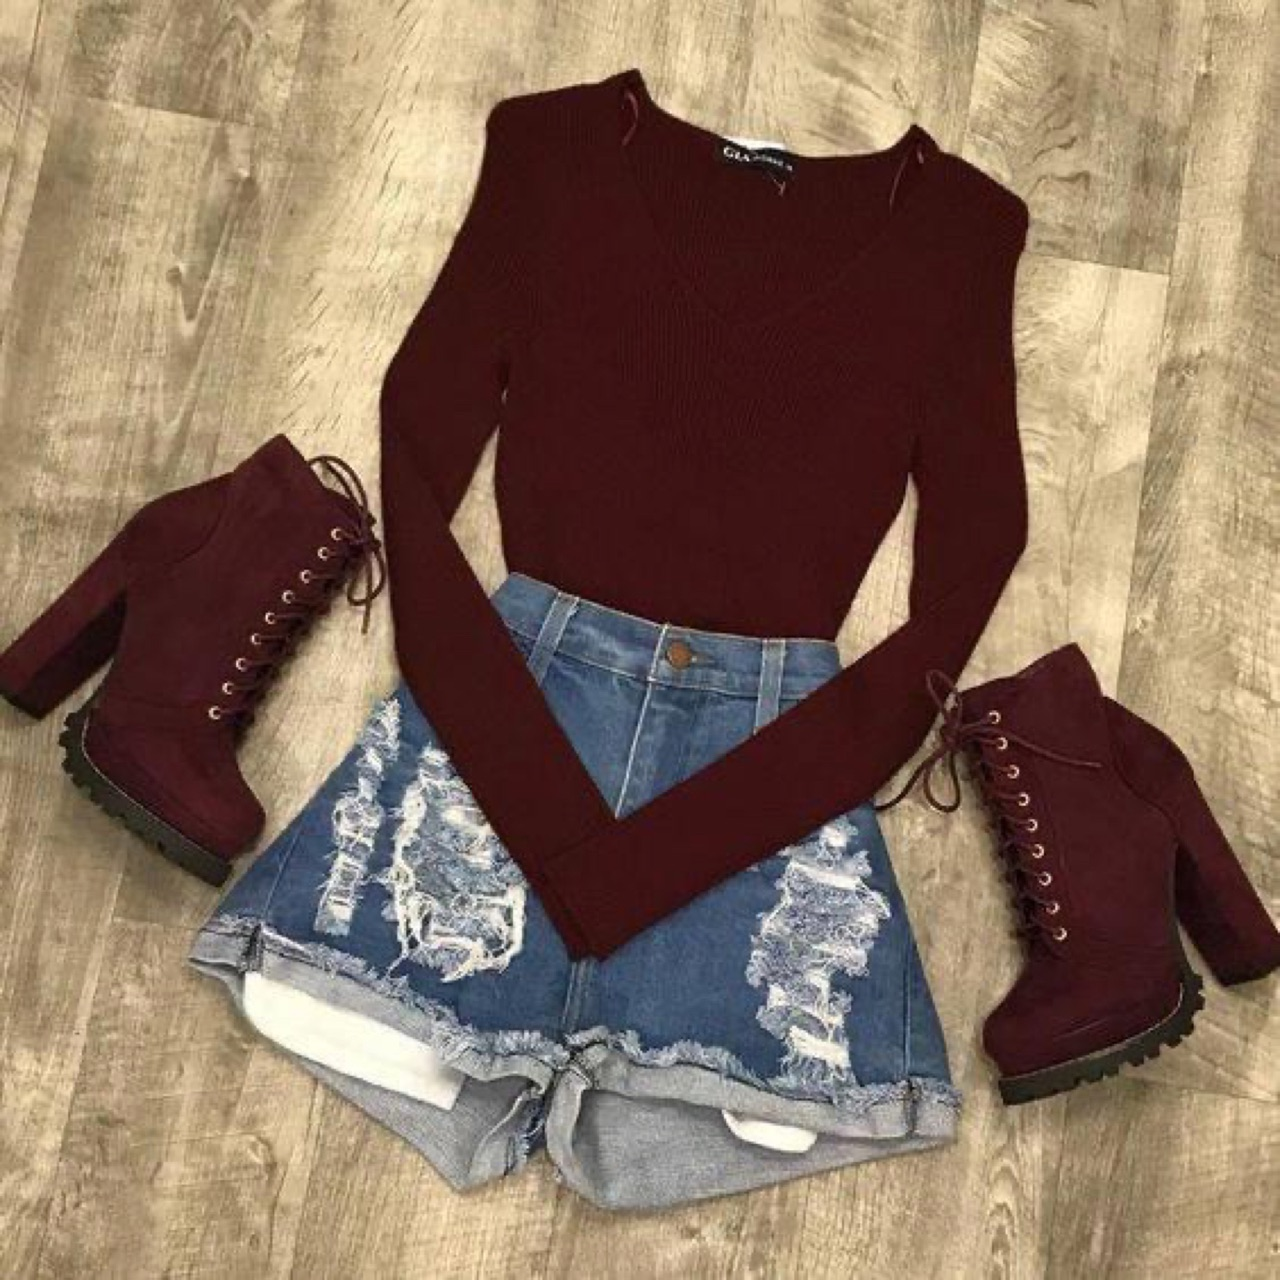 outfits and fashion image